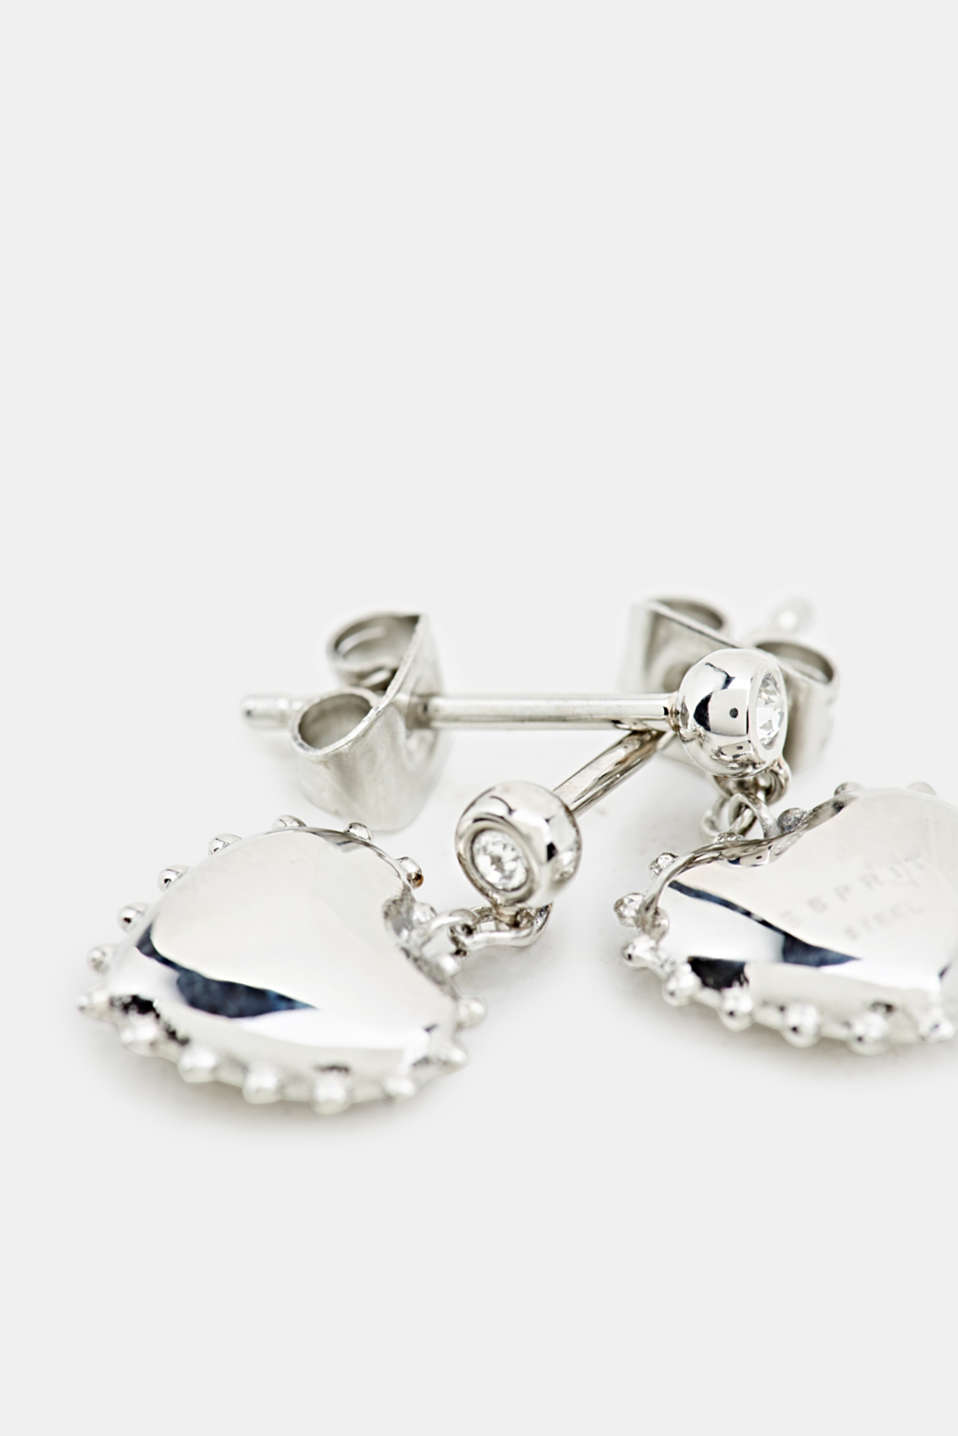 Stud earrings with heart charm, made of stainless steel, LCSILVER, detail image number 1